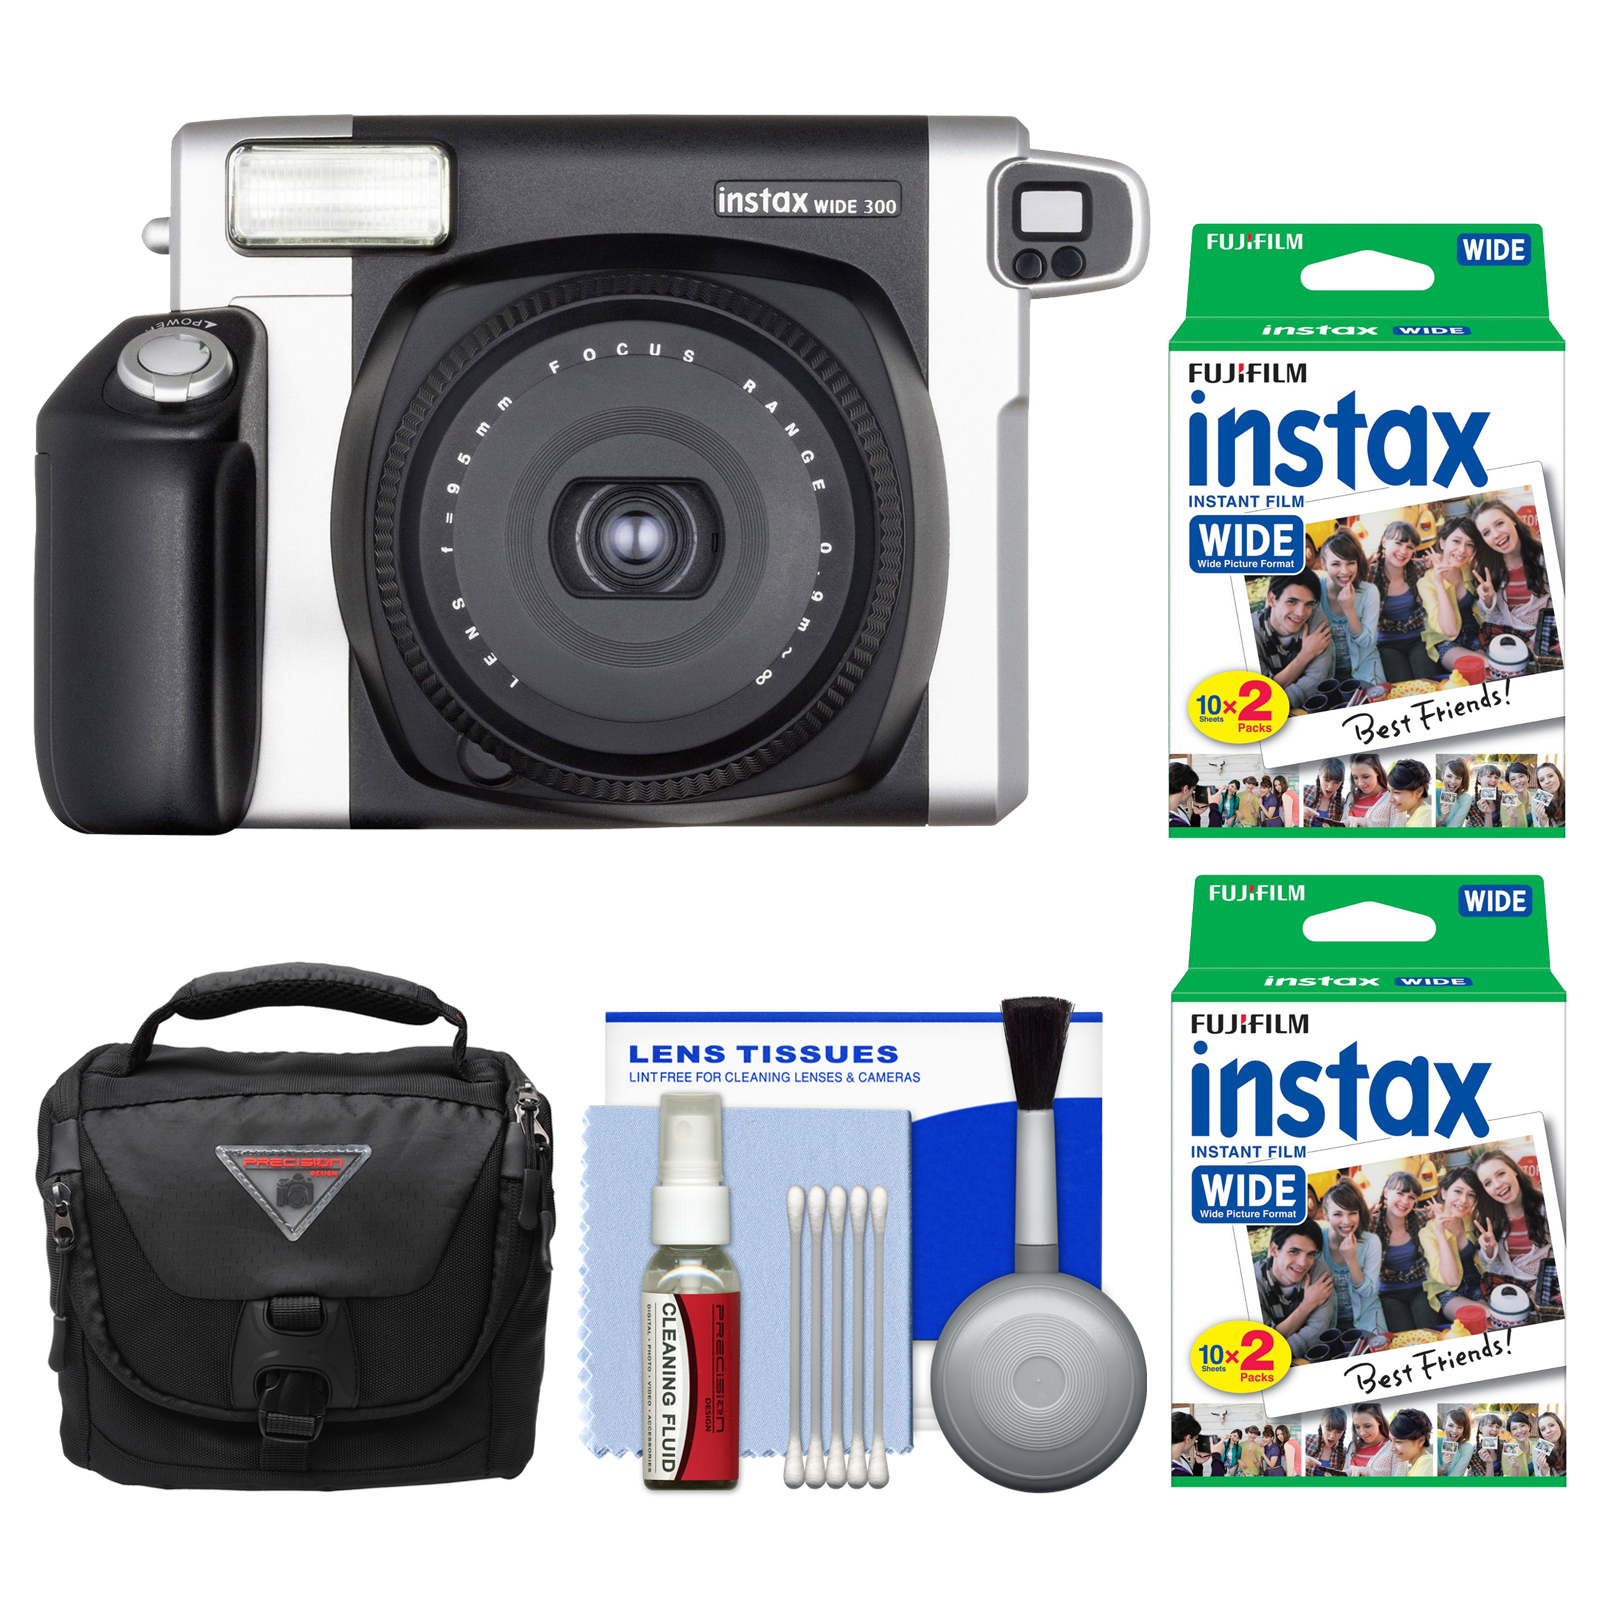 FujiFilm Instax Wide 300 Instant Film Camera with 40 Wide Twin Prints + Case + Kit by Fujifilm